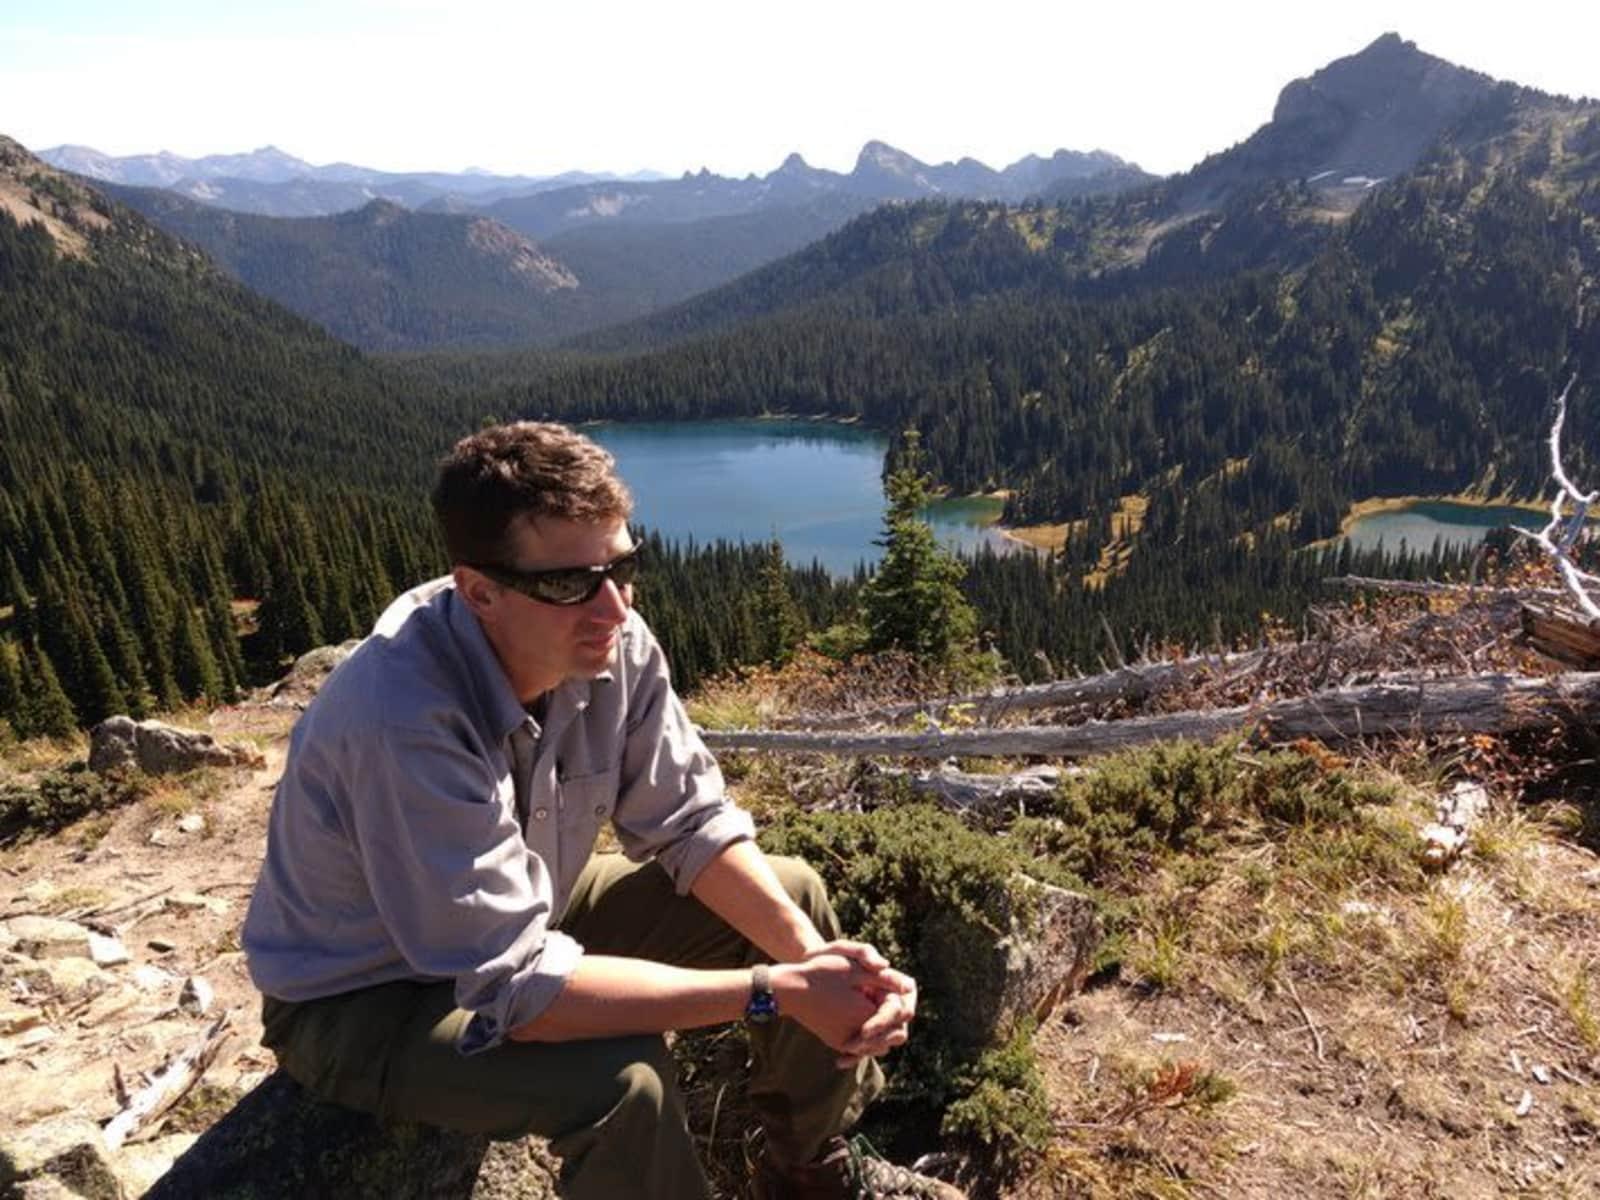 Kevin from Packwood, Washington, United States